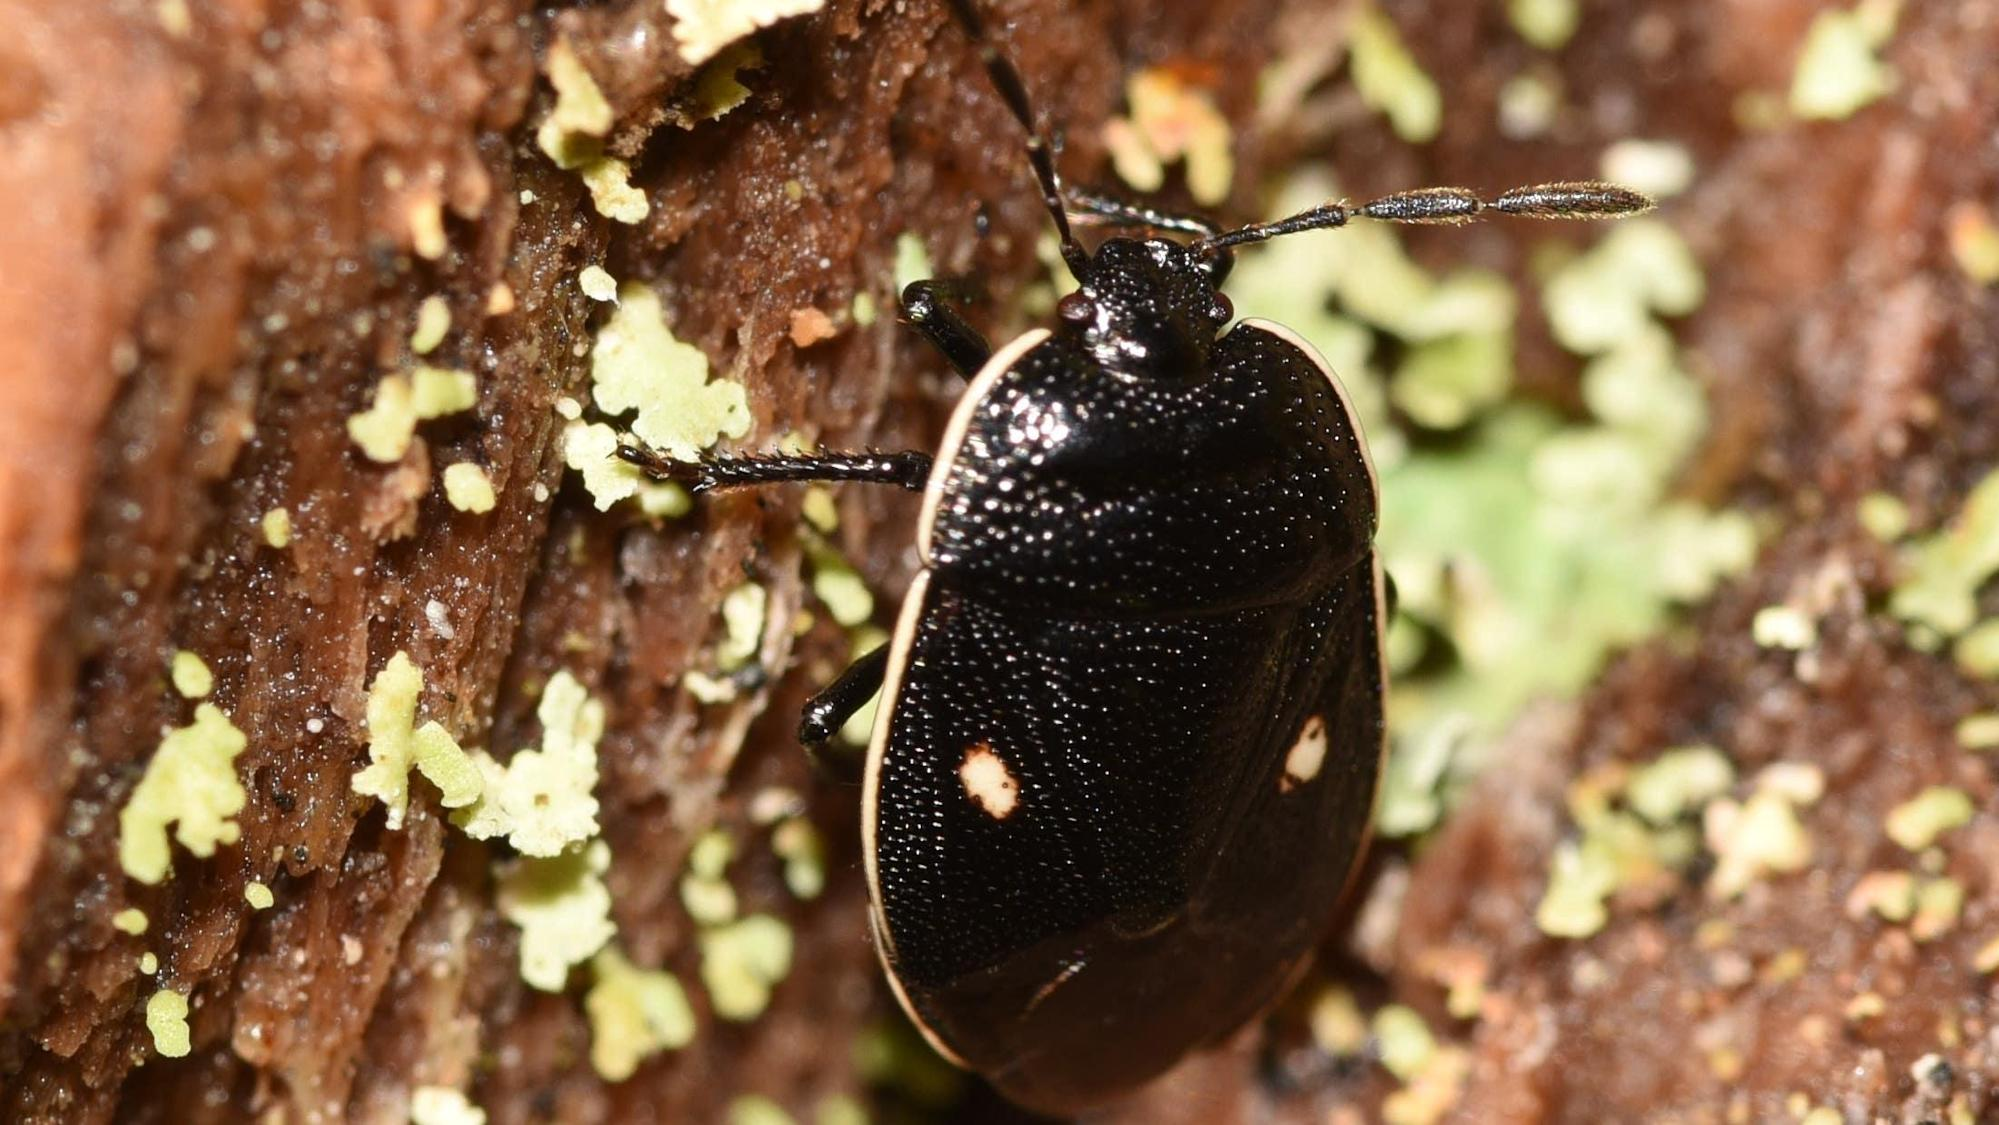 Rare insect rediscovered in Scotland after more than 30 years